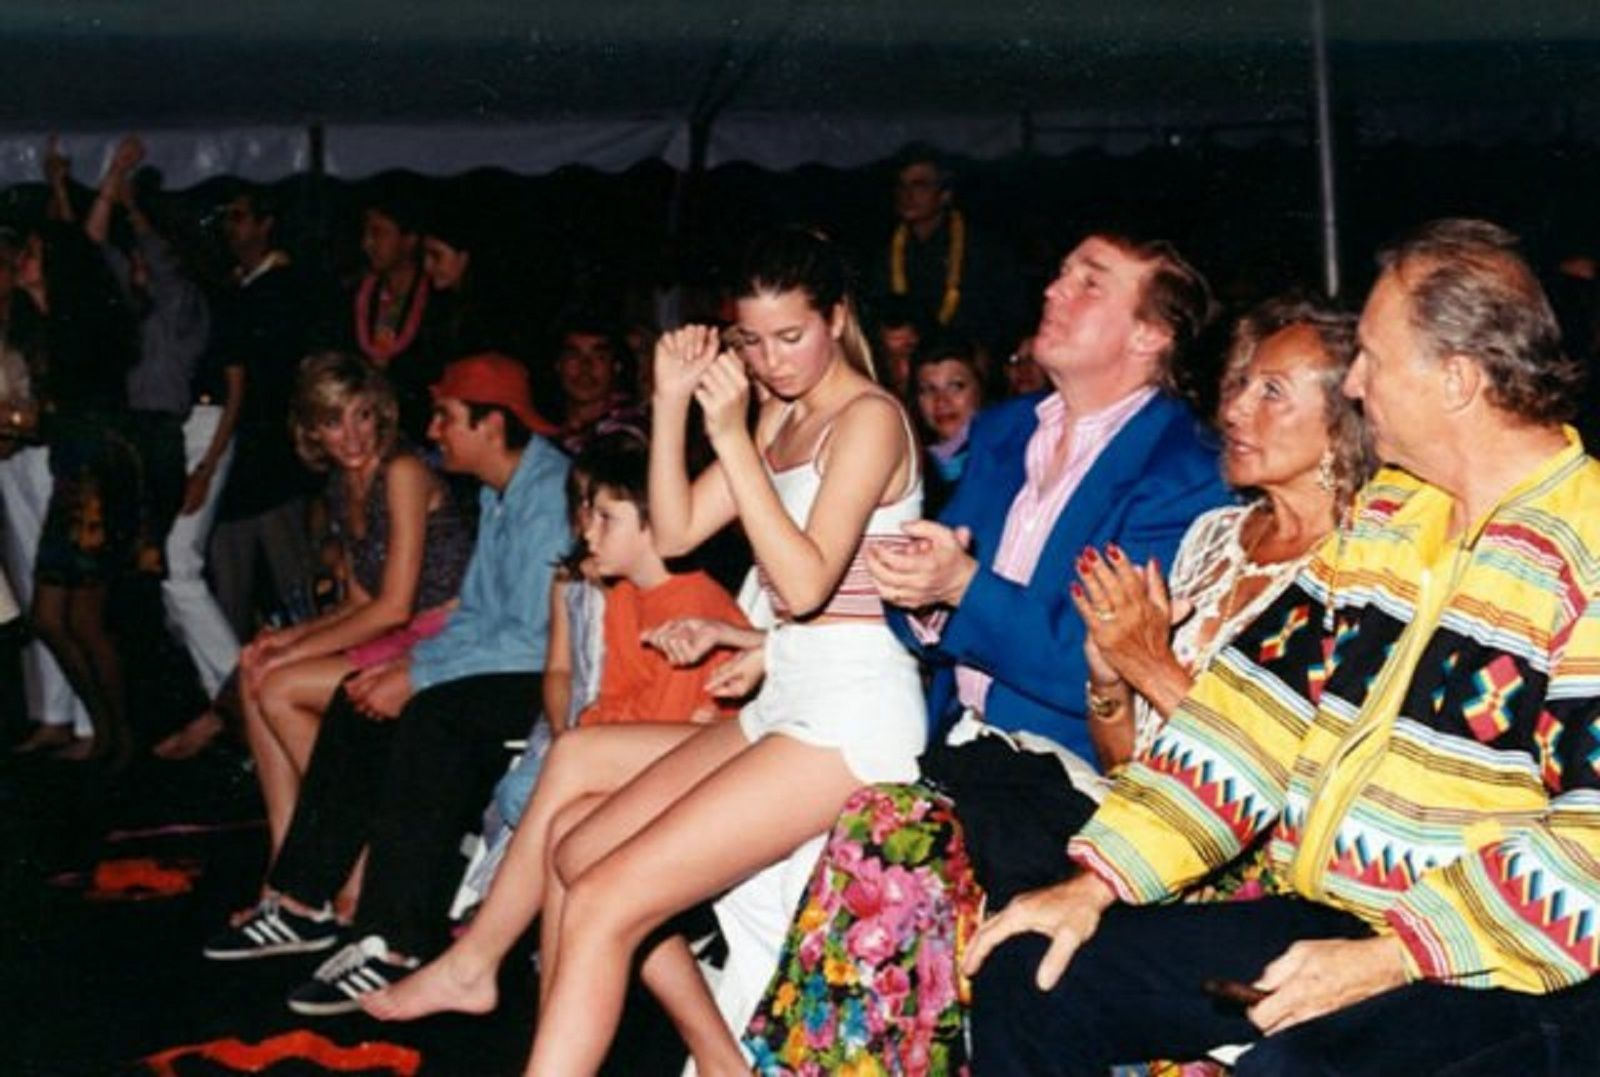 15 Photos Of Donald Trump Caught In Compromising Situations ...